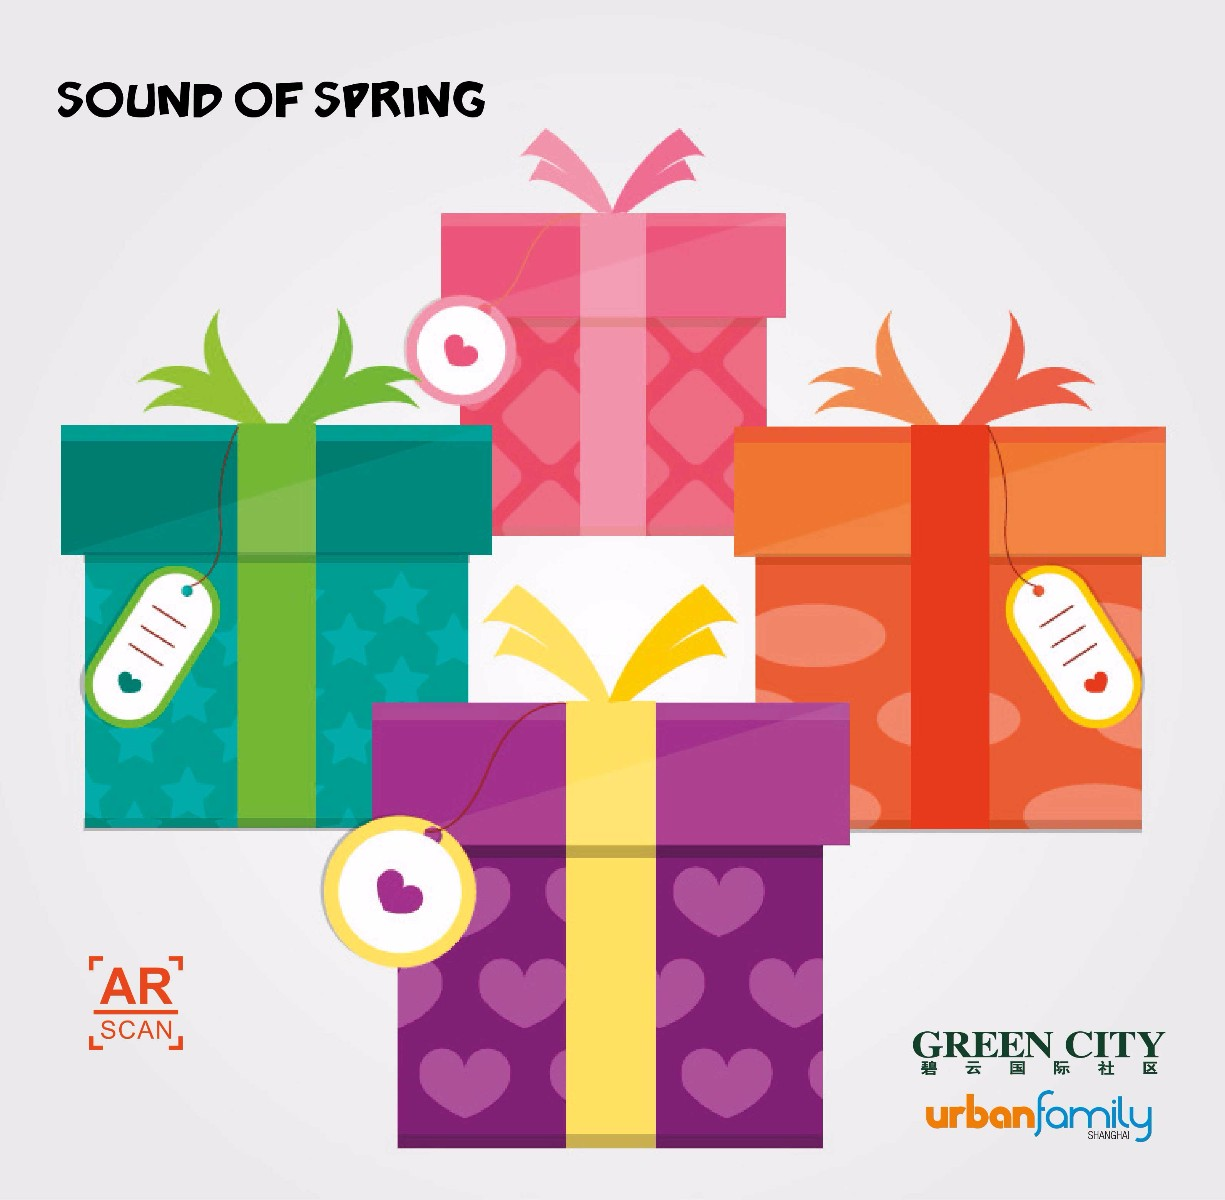 sound-of-spring-gift-box-icon1-93495a.jpg